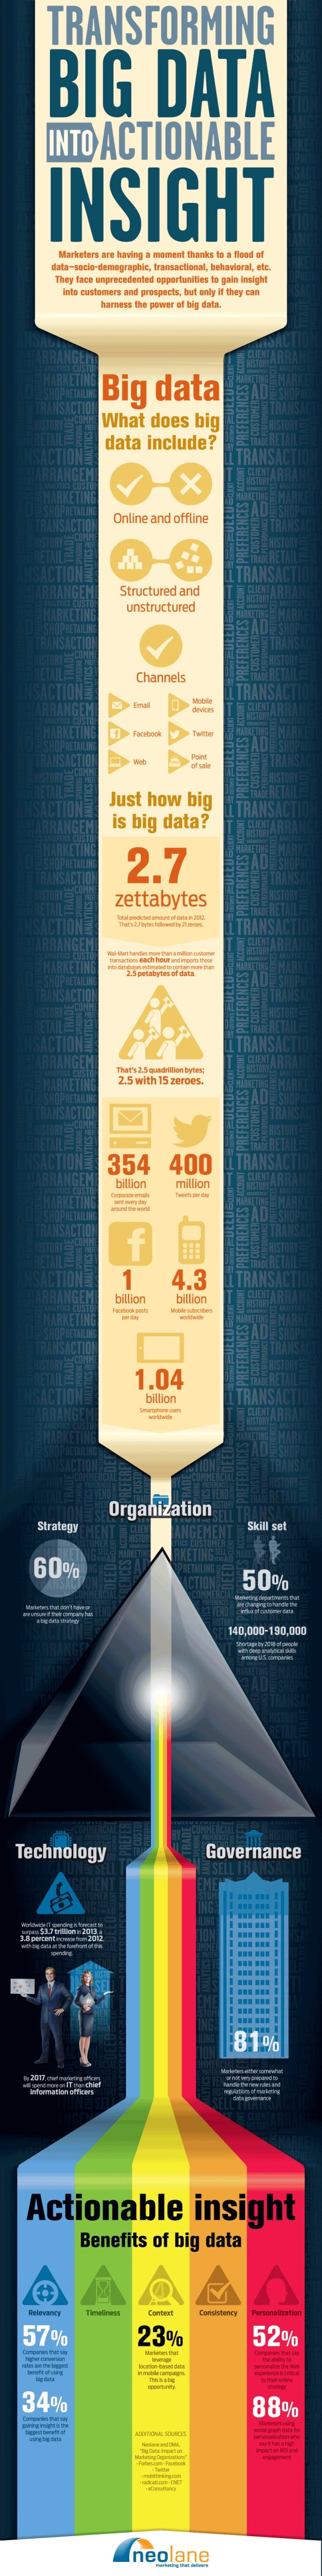 Transforming Big Data Into Actionable Insight [infographic]